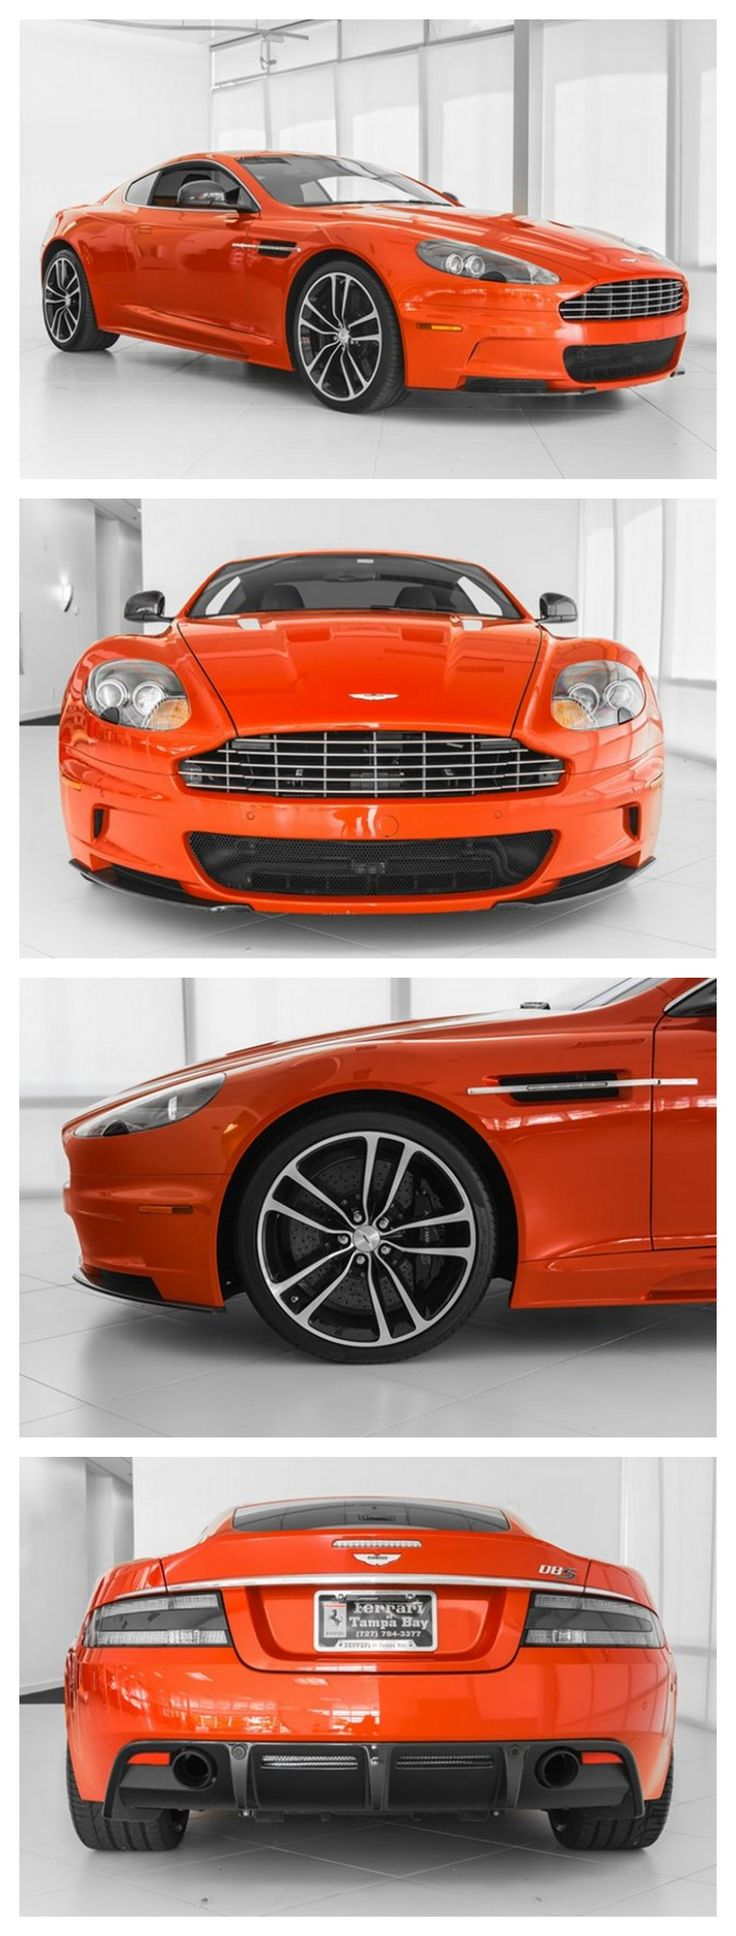 Sublime Aston Martin DBS Carbon Edition #Inspiration #oneDay #RePin by AT Social Media Marketing - Pinterest Marketing Specialists ATSocialMedia.co.uk